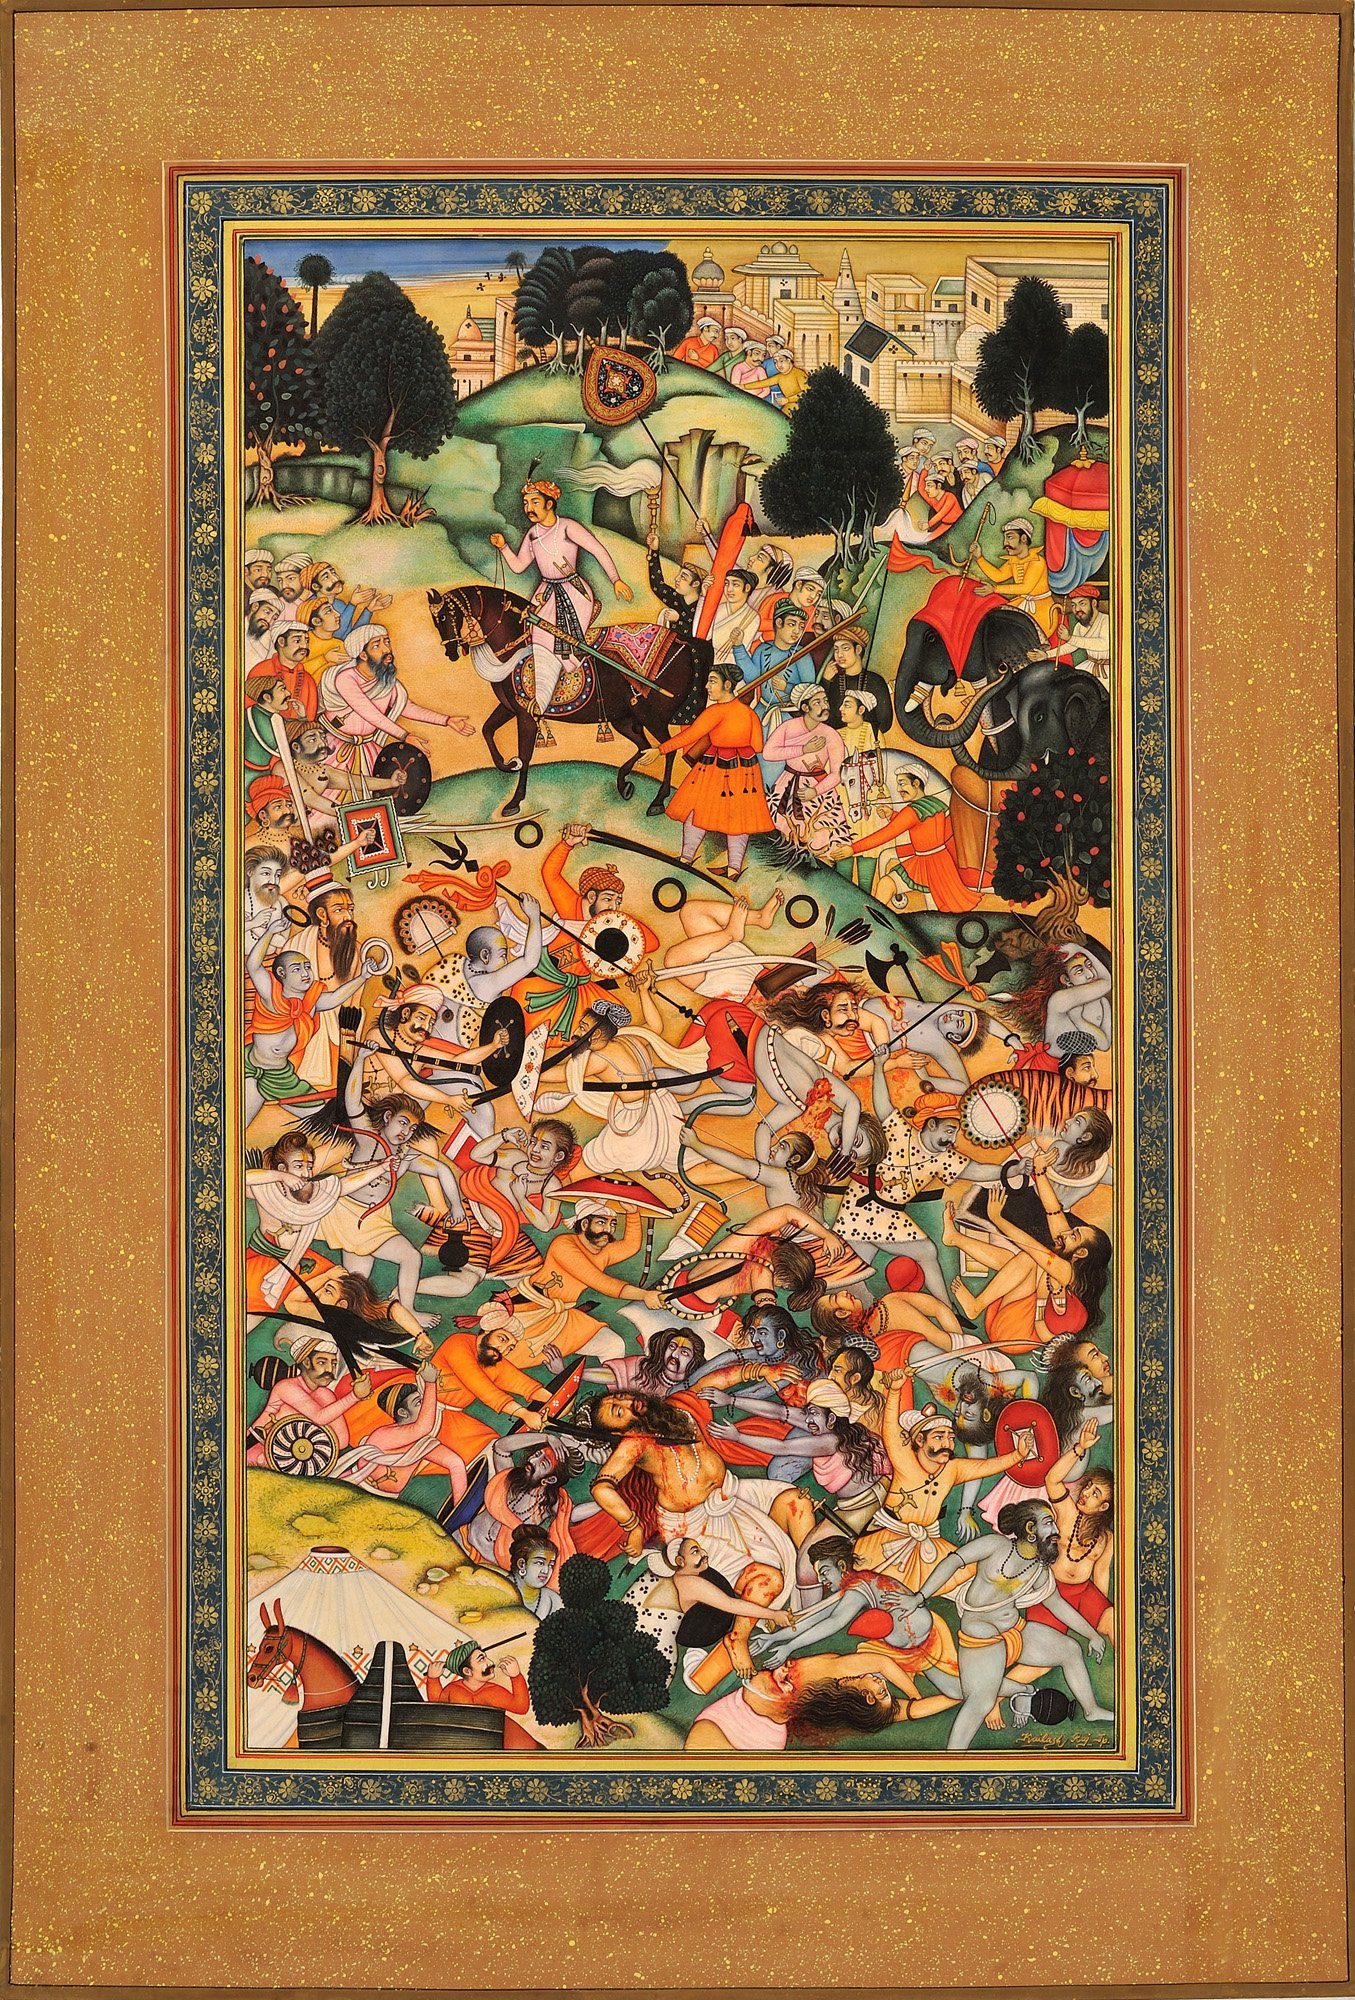 Two Groups of Ascetics Battling - From the Akbarnama - Water Color Painting on Paper - Artist: Kaila